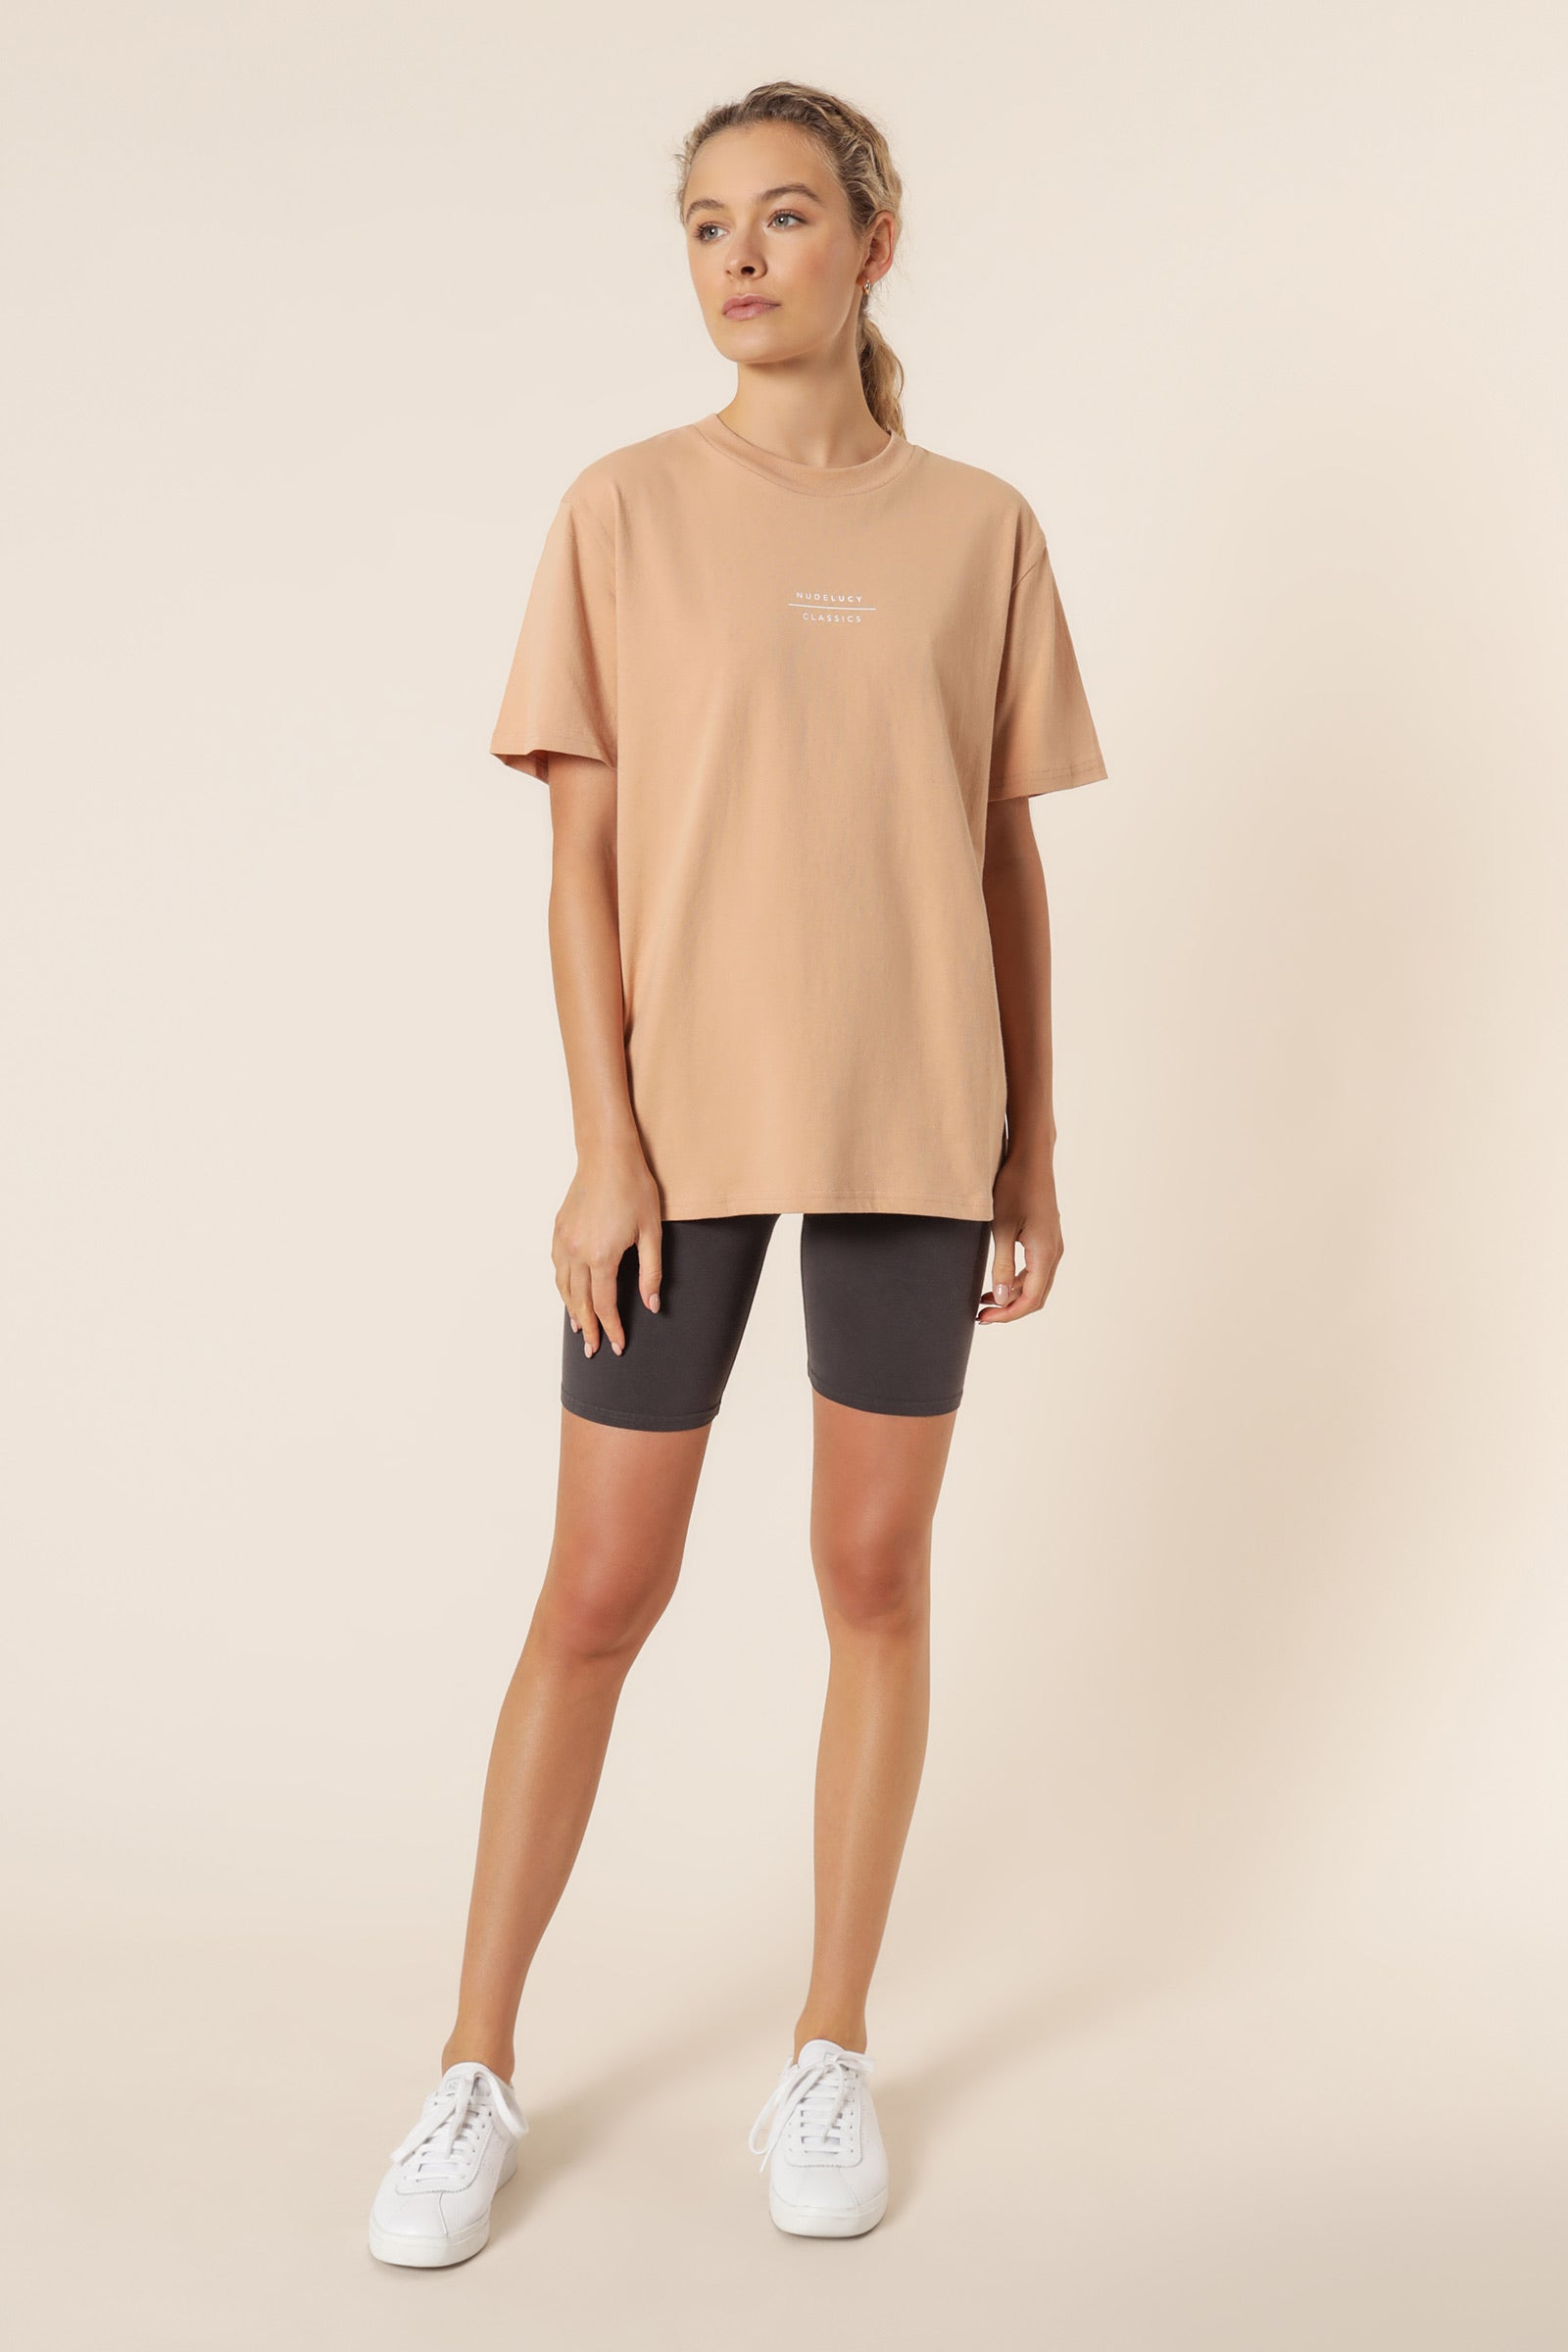 Nude Lucy II Nude Classic Slogan BF TEE / Biscuit